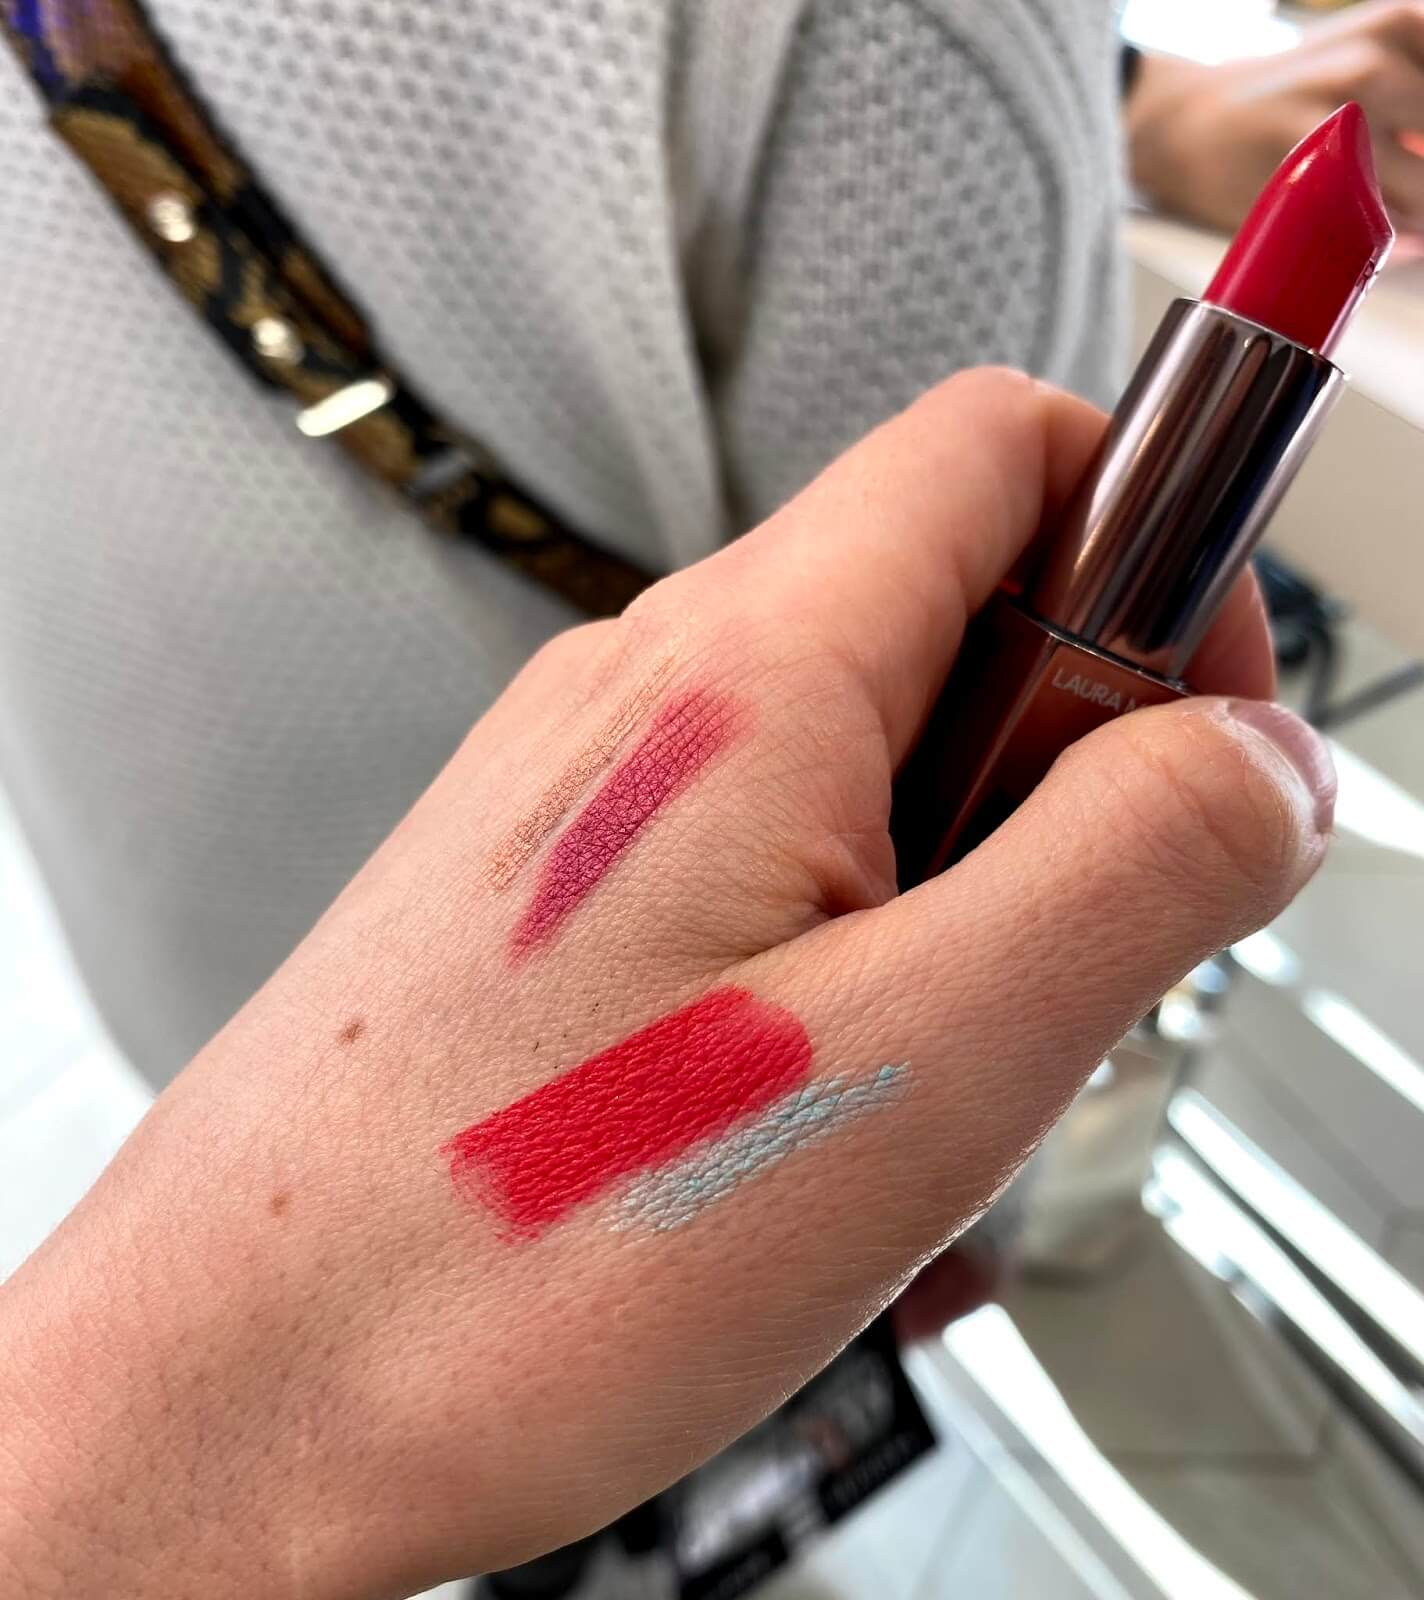 Laura Mercier Rouge Essentiel Rose Mandarine swatch